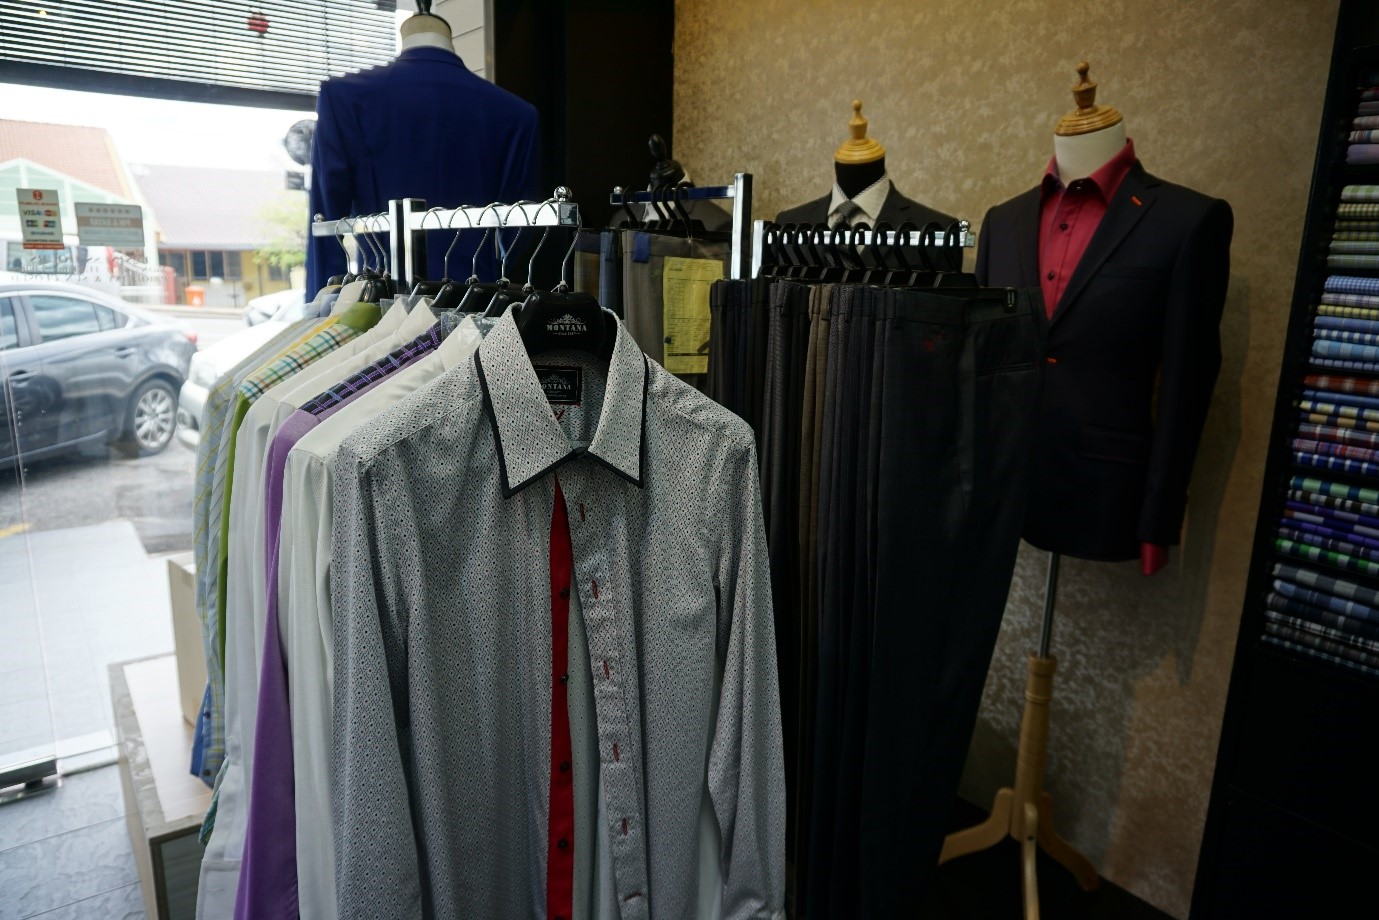 montana fashion shop sea park petaling jaya, tips pemakaian sut